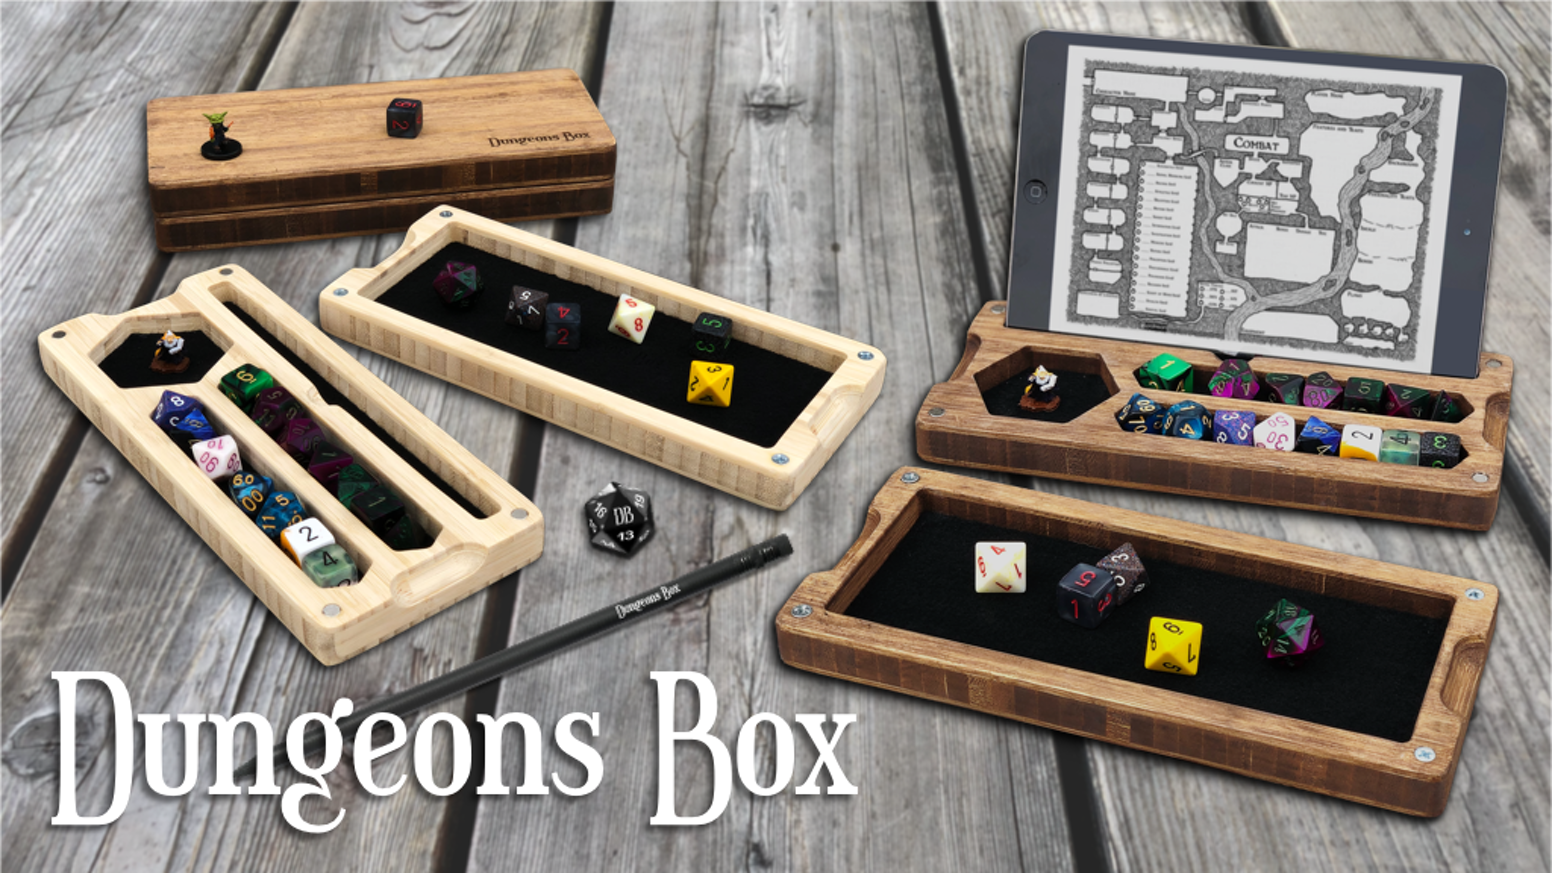 Your all-in-one RPG travel case. Including storage for dice, miniatures, a built-in rolling tray, pencil slot &  phone/tablet stand.